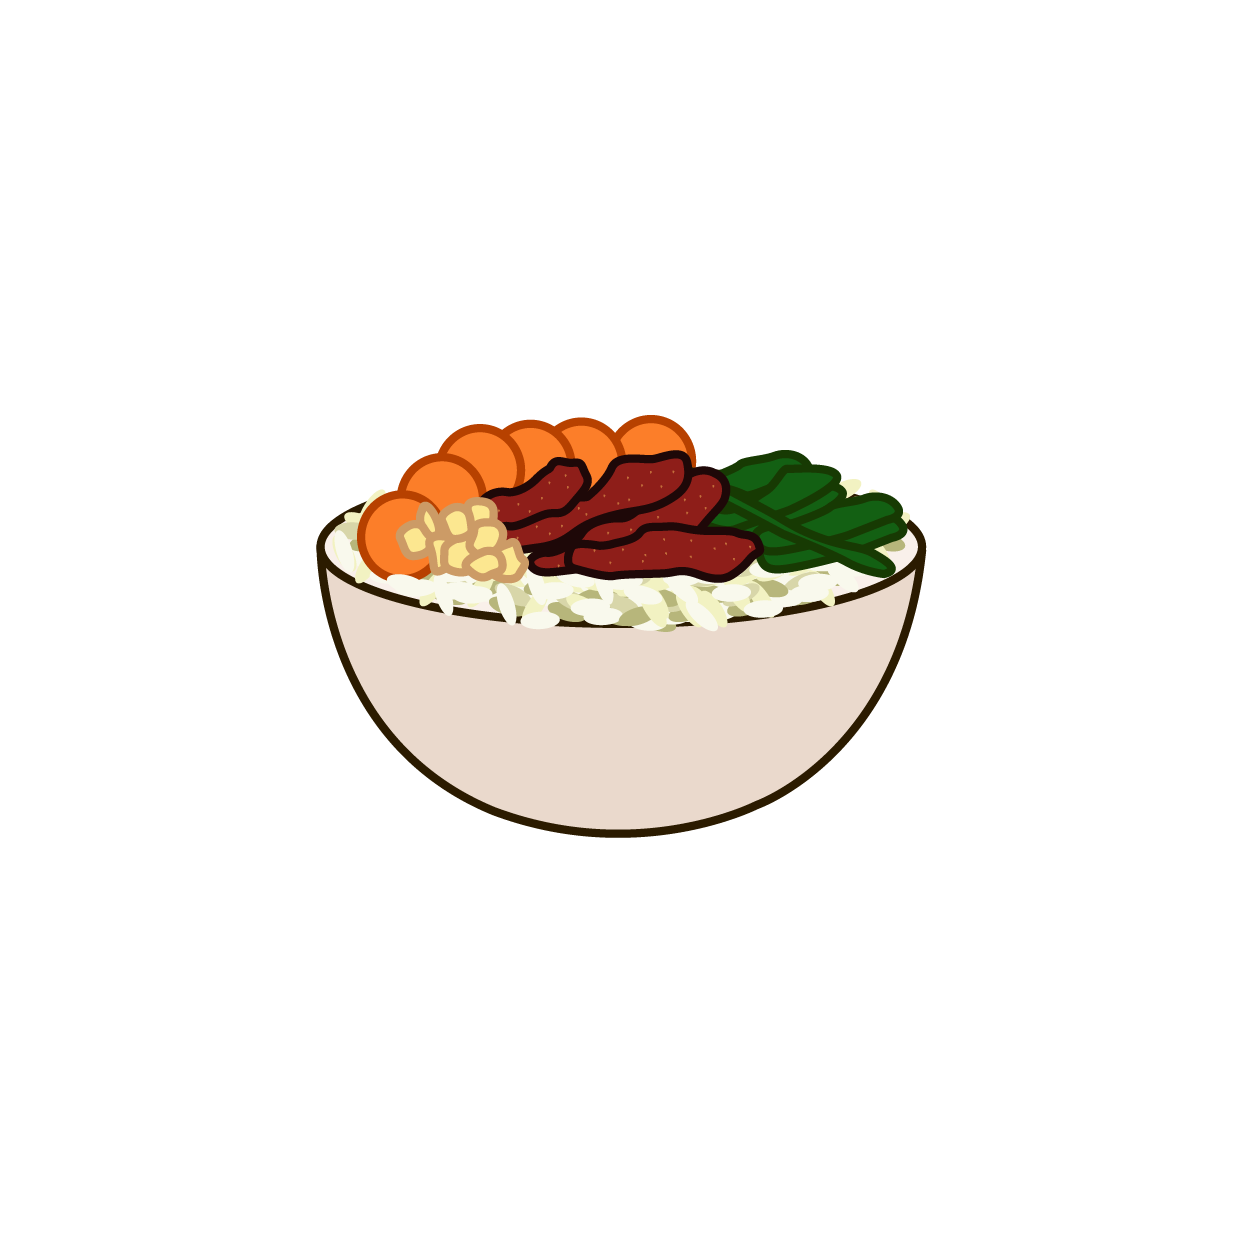 Burritos and bowls clipart clipart royalty free download Free collection of Burrito clipart burrito bowl. Download ... clipart royalty free download